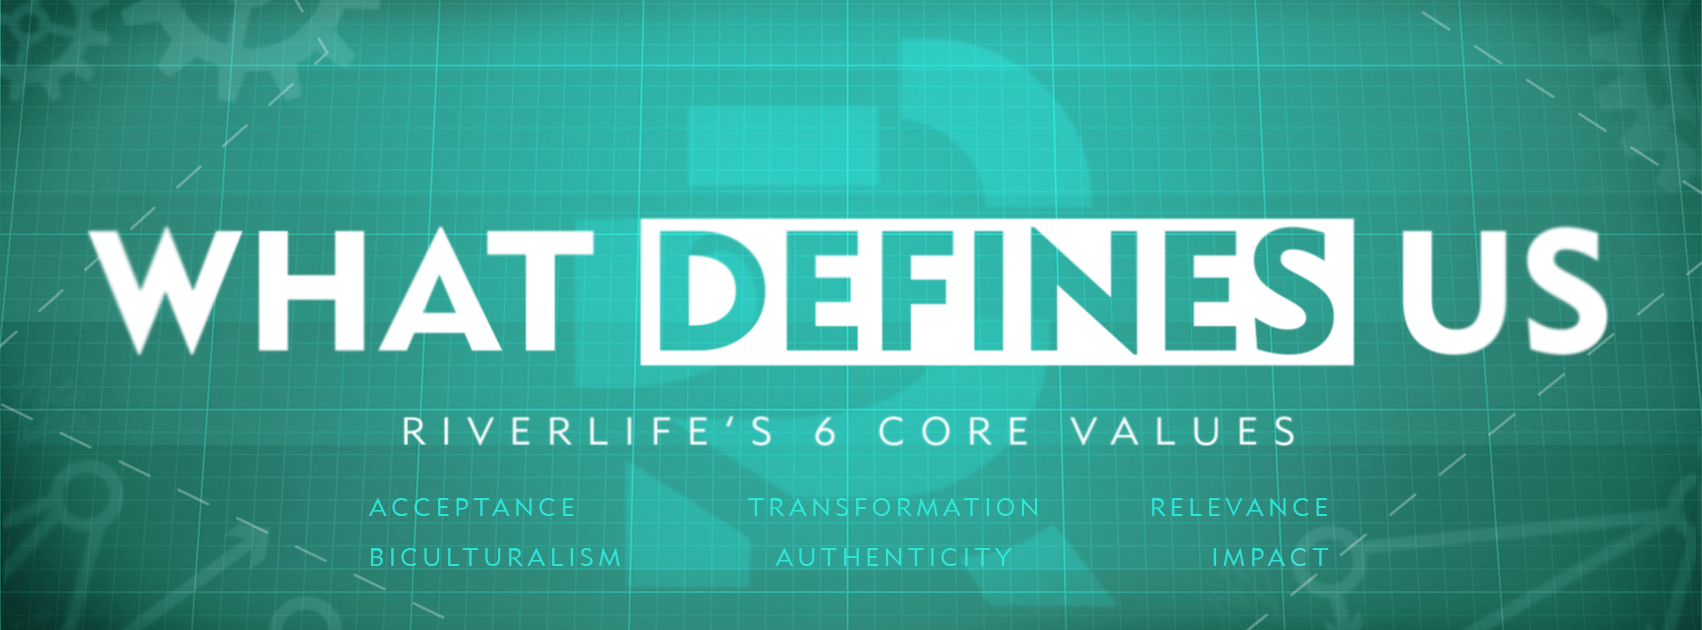 At RiverLife, we have six core values that drive everything from how we organize our Sunday services to how we spend our money. They are, in essence, what defines us.